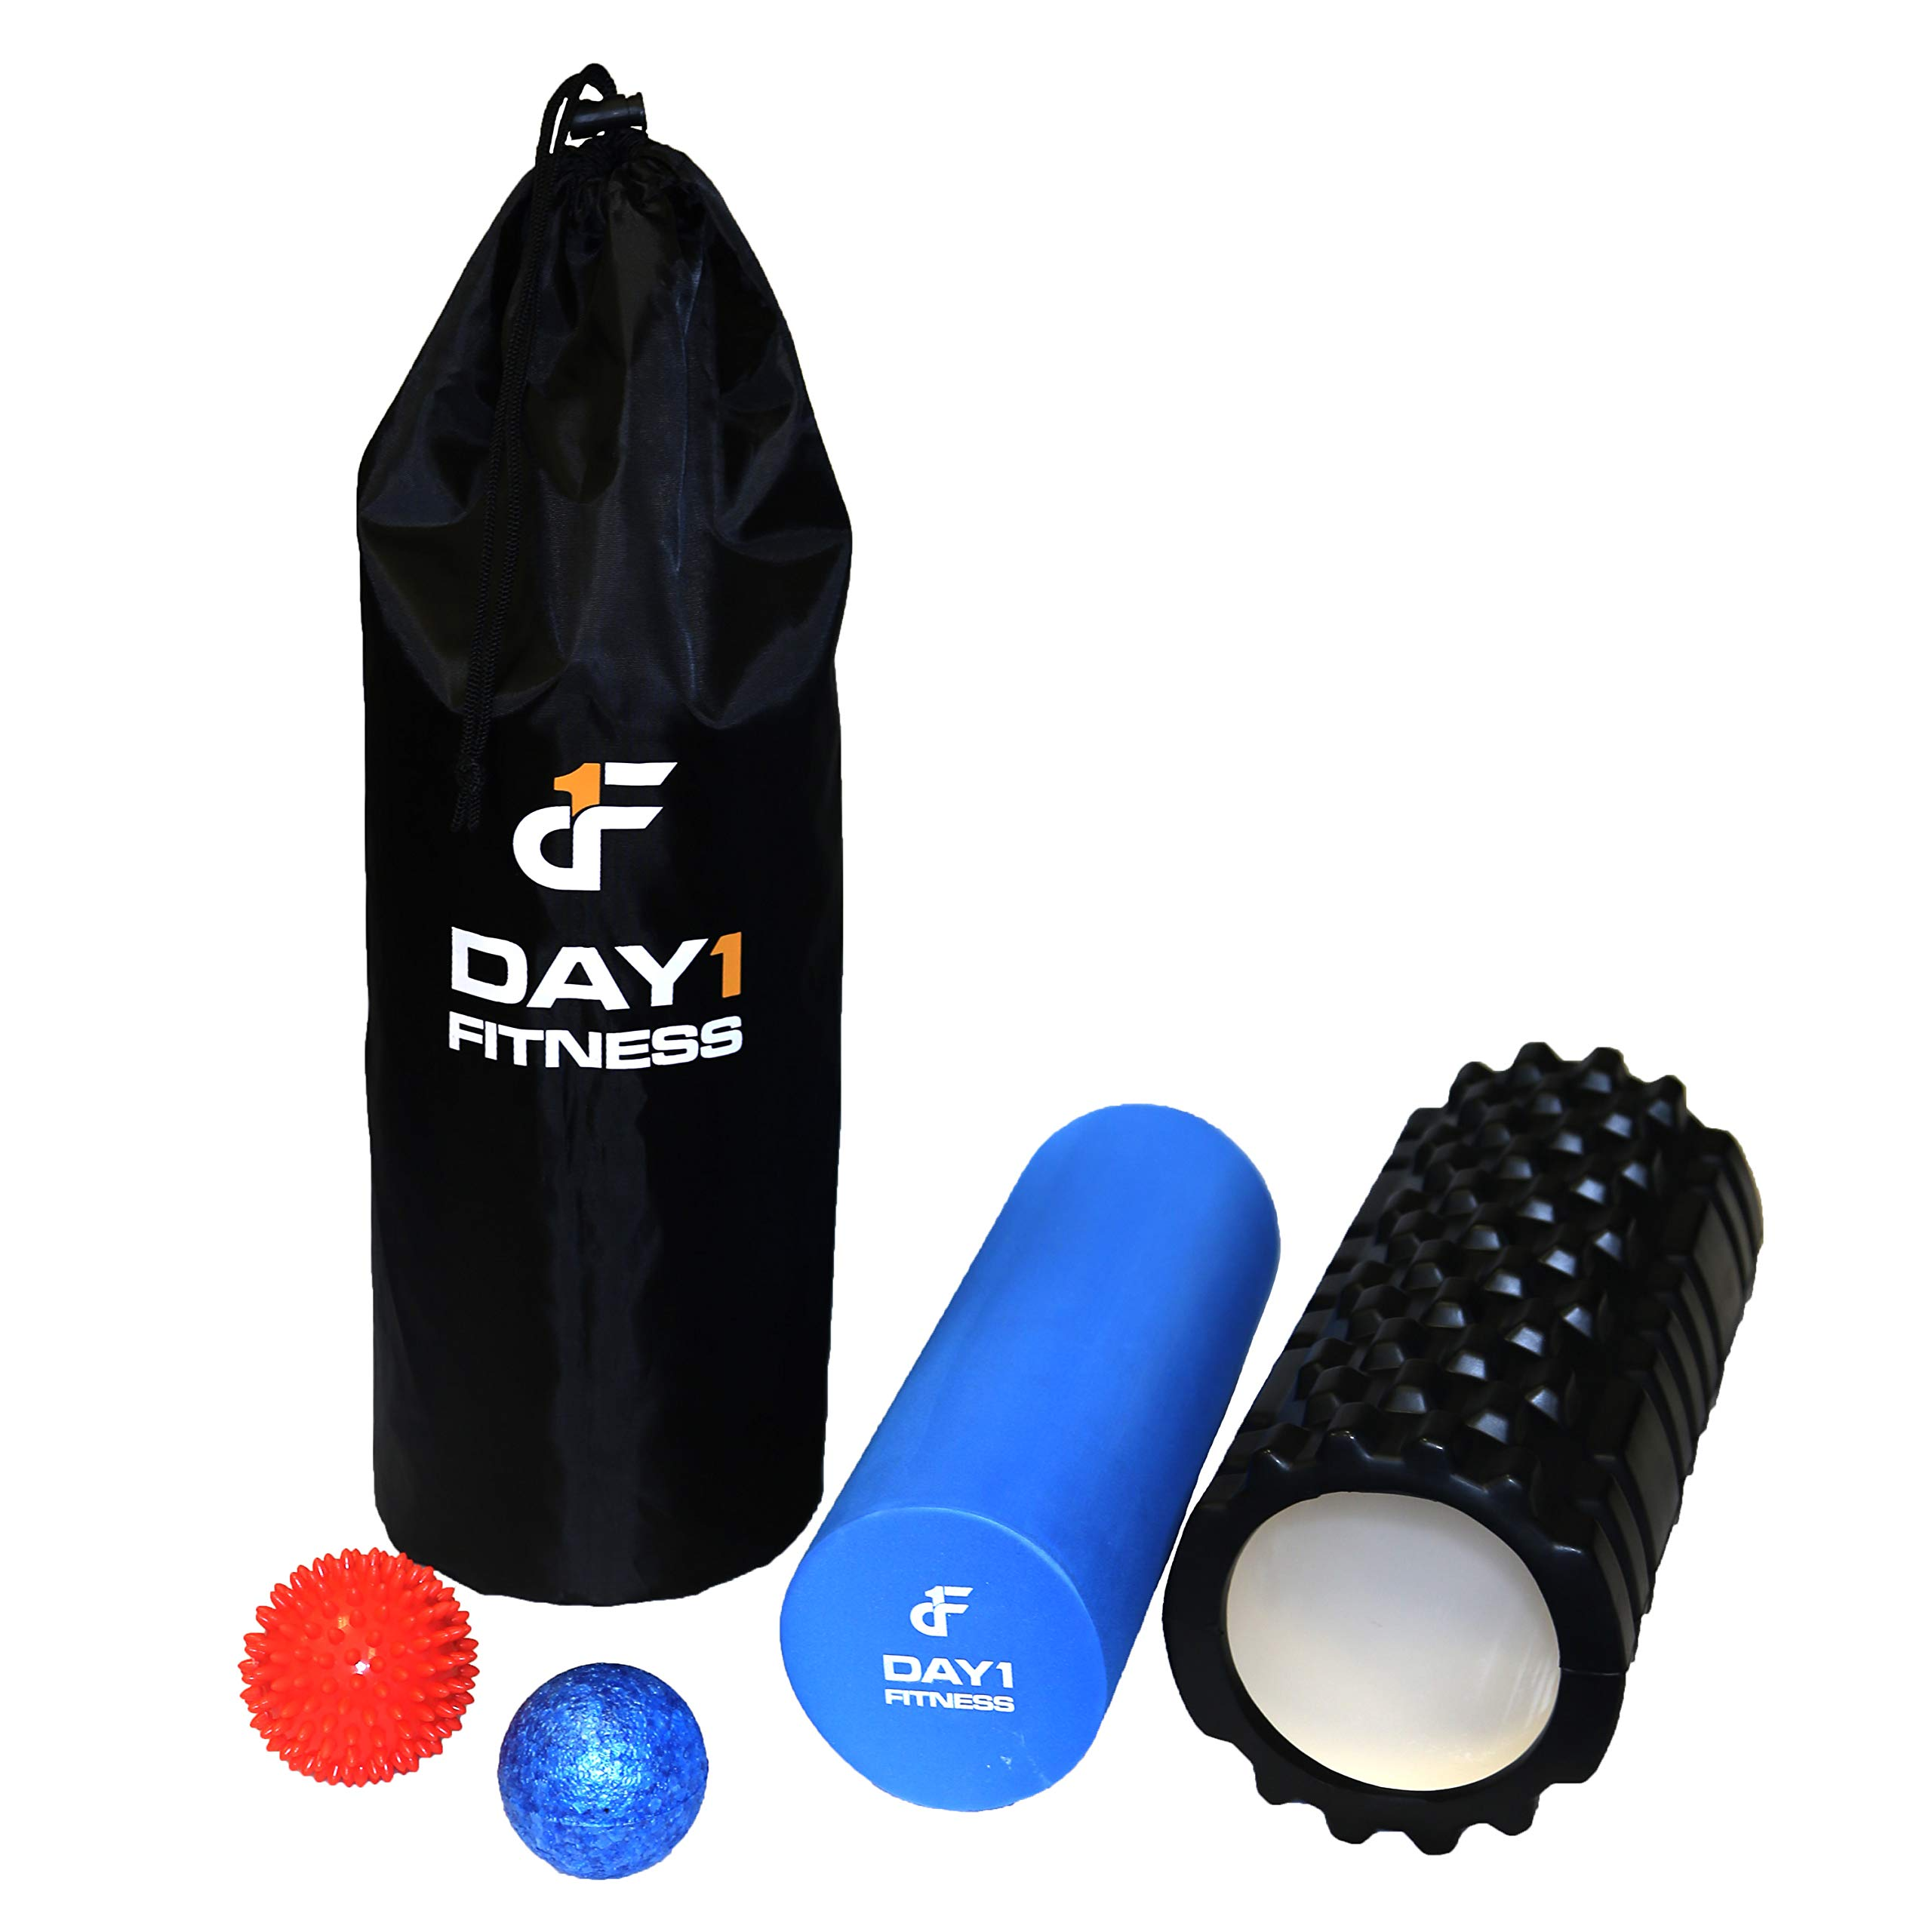 Day 1 Fitness 13'' Black Massage Roller - Ribbed Foam Roller with Removable Core, Spiky Ball, High Density Ball, and Bag.